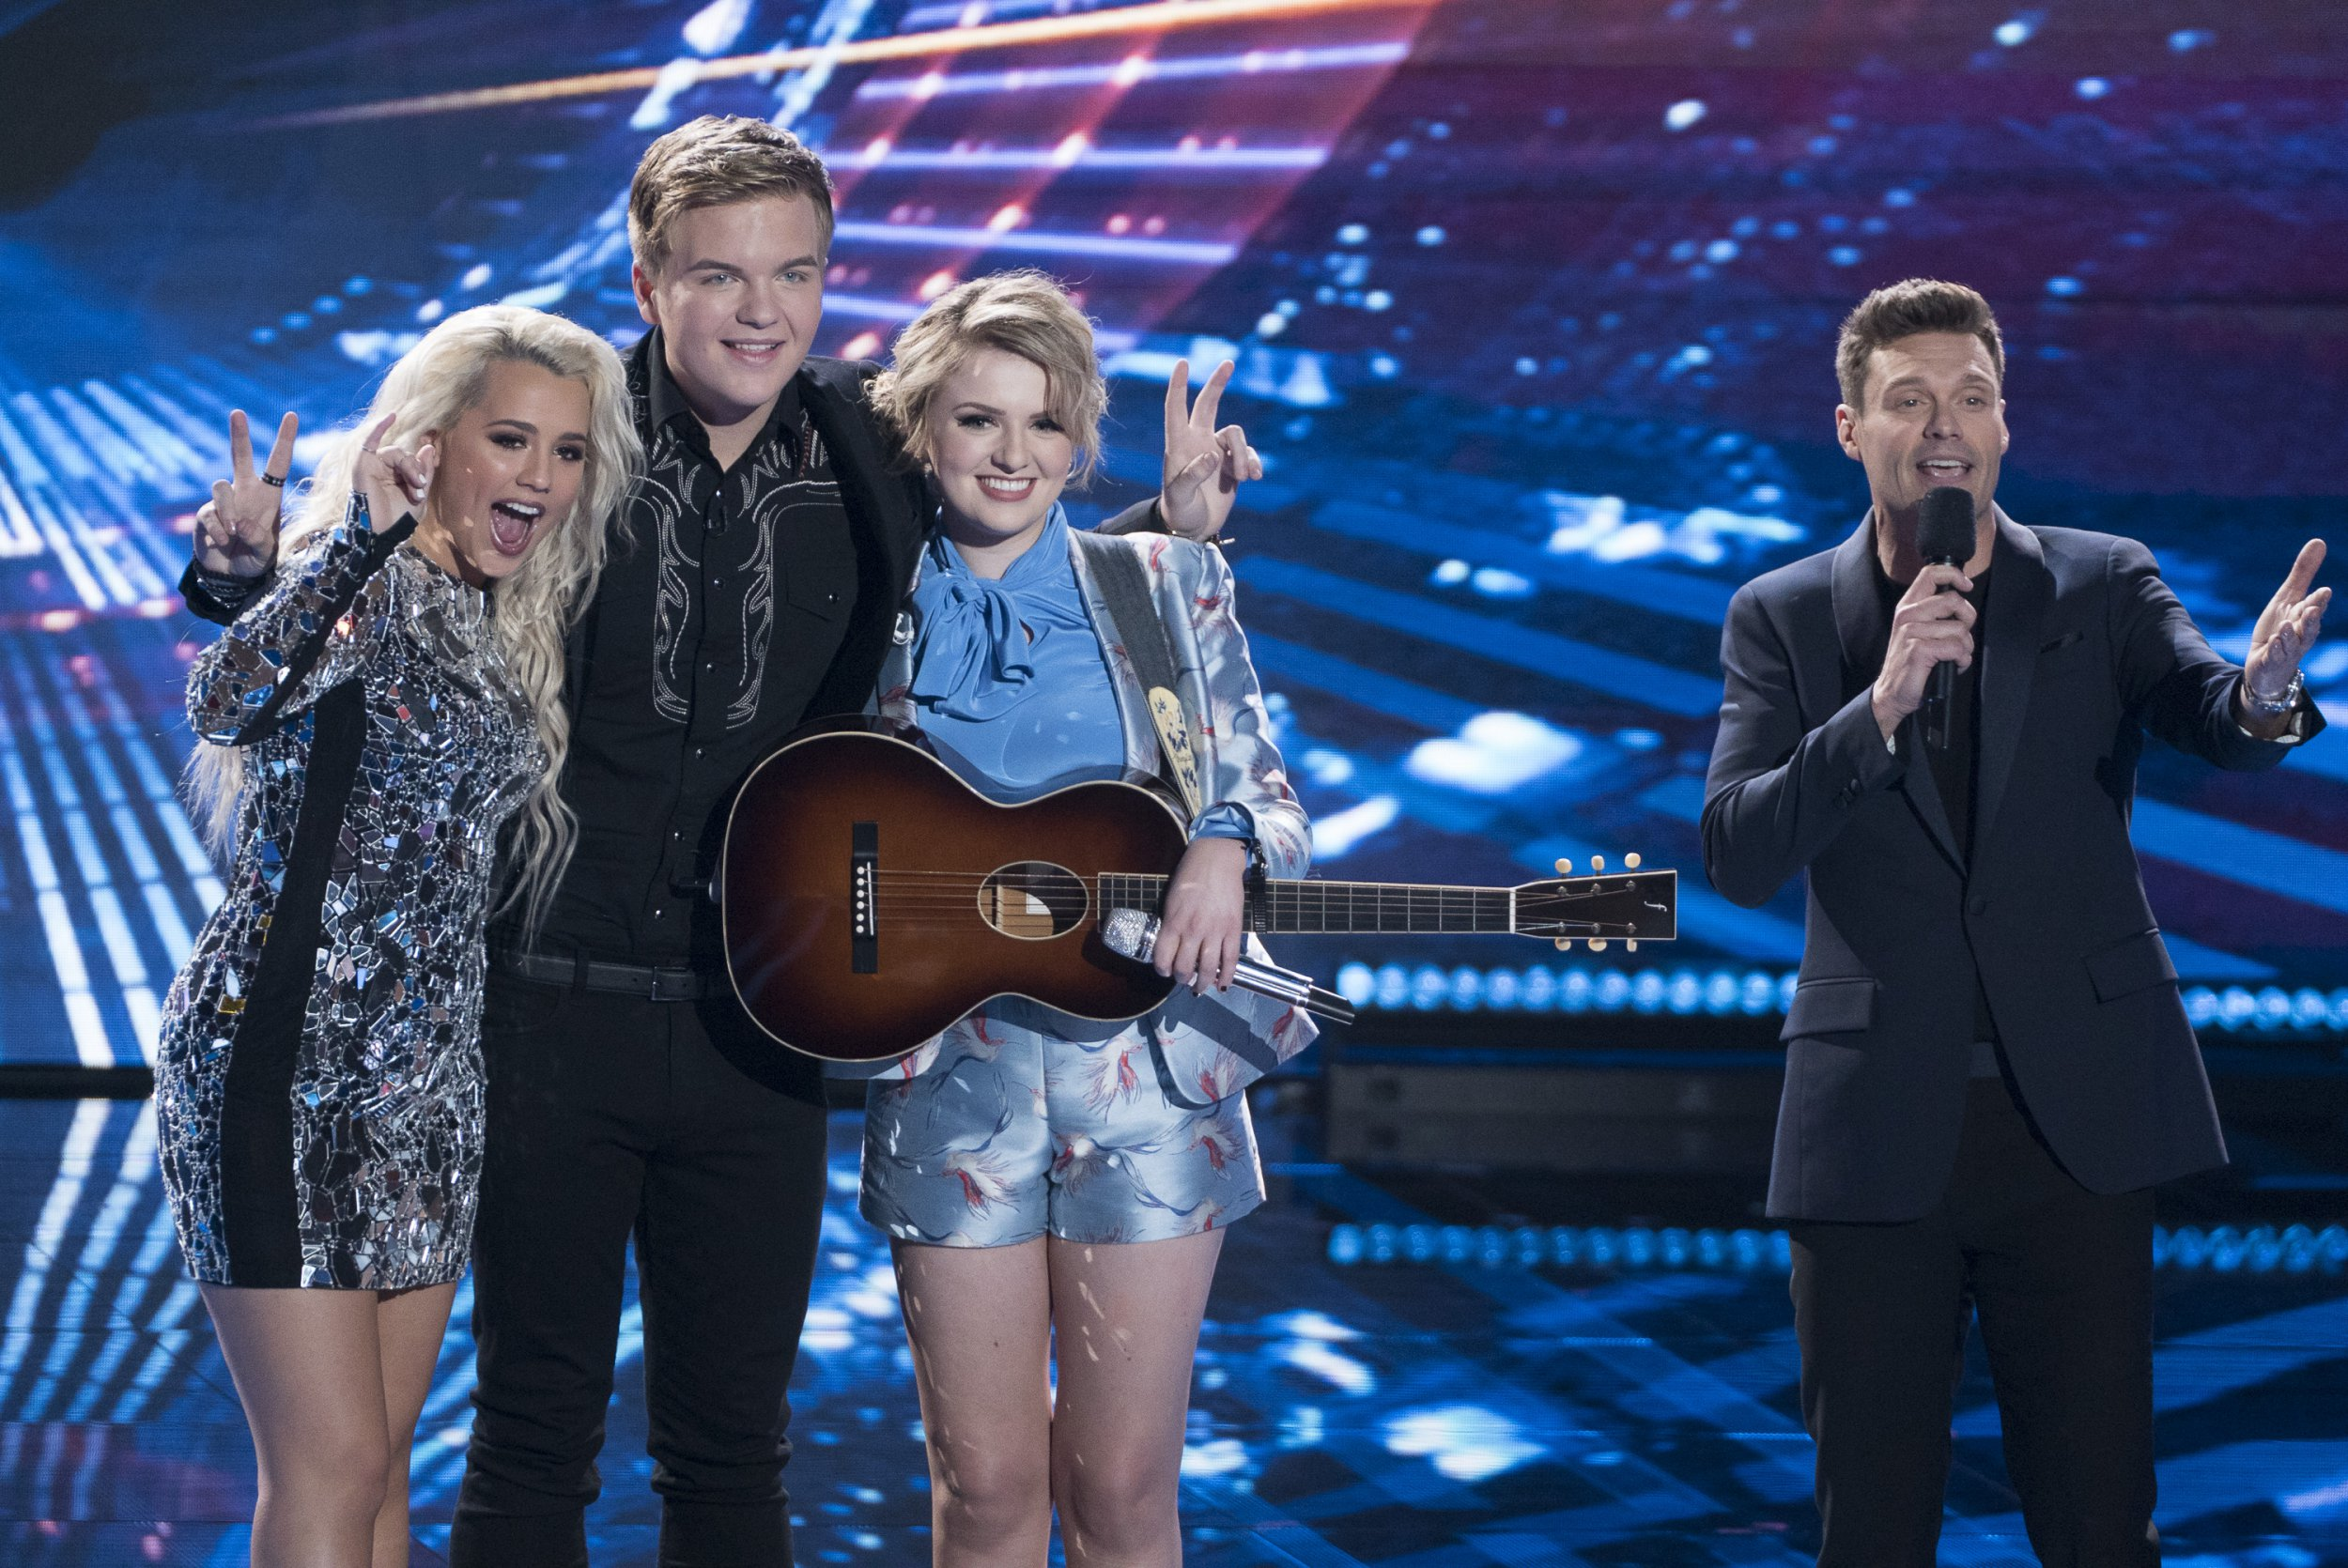 American Idol finalists, final date and is the show being aired in the UK?